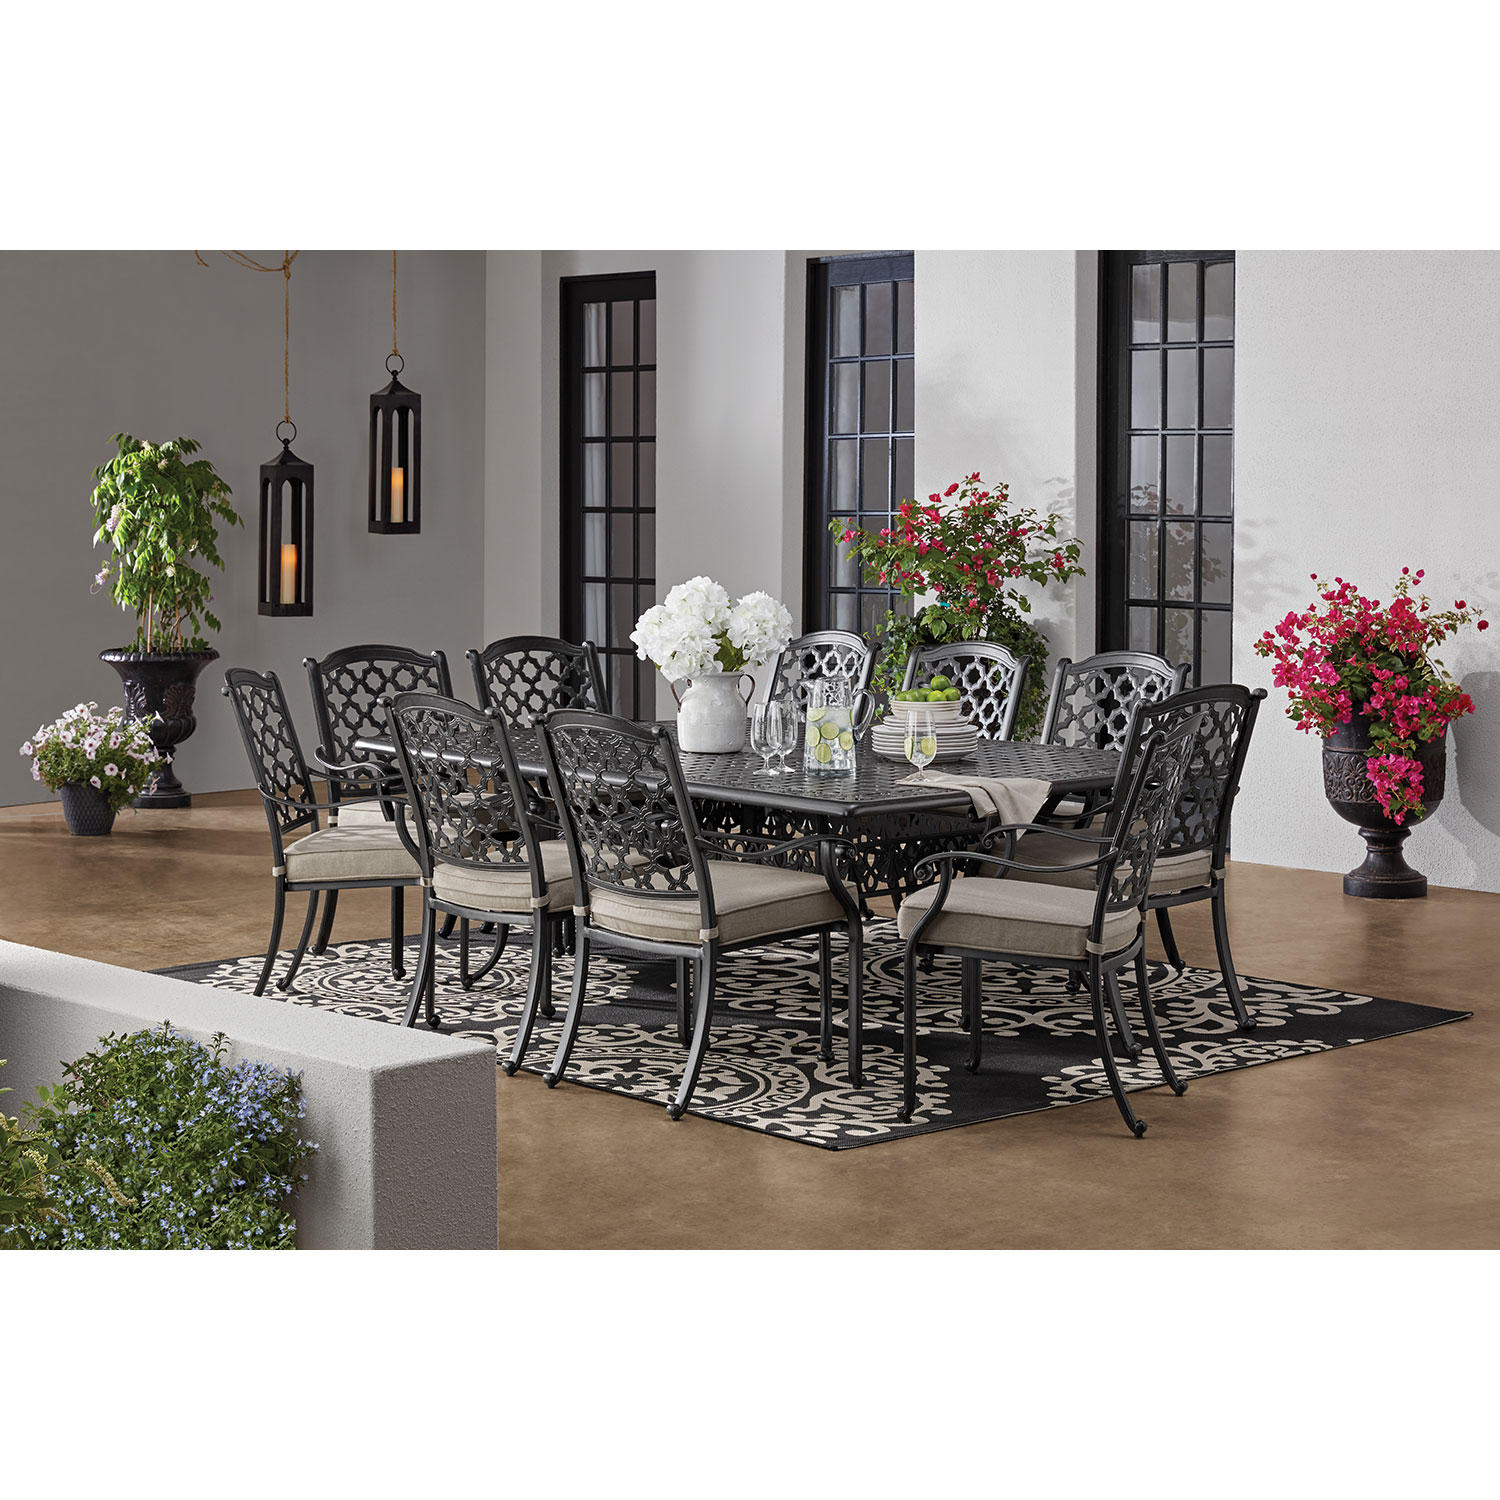 Member's Mark Paisley 11-Piece Outdoor Patio Dining Set